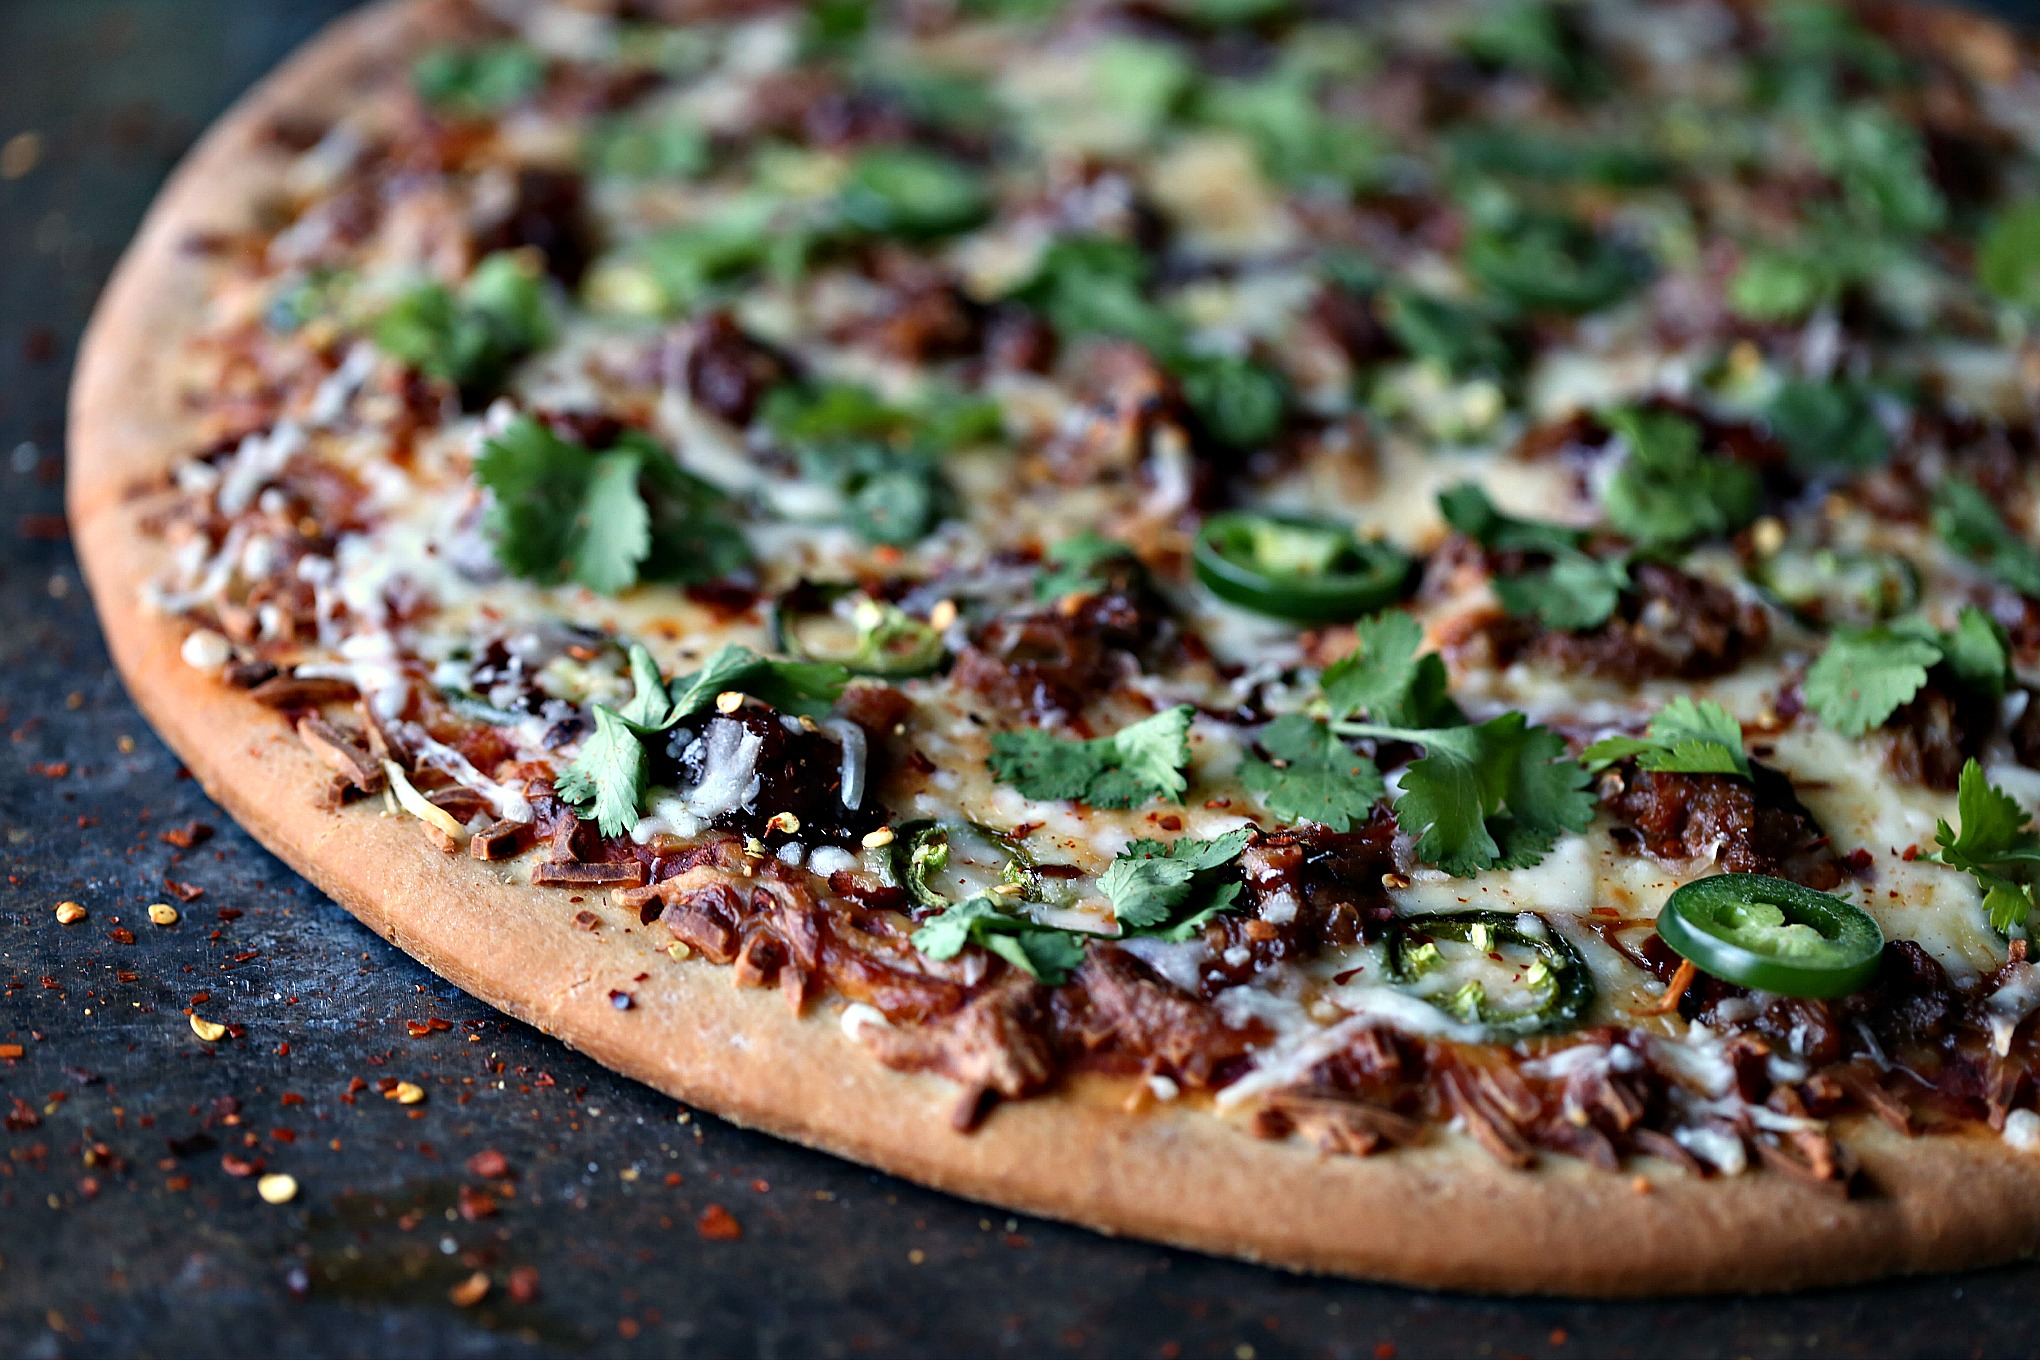 Pressure Cooker Pulled Pork for a Game Day Pulled Pork Pizza. This Pressure Cooker/IP Pulled Pork Recipe is perfect for topping pizza for game day. It's a quick and easy recipe that will help you score a recipe touchdown with all your friends and family.